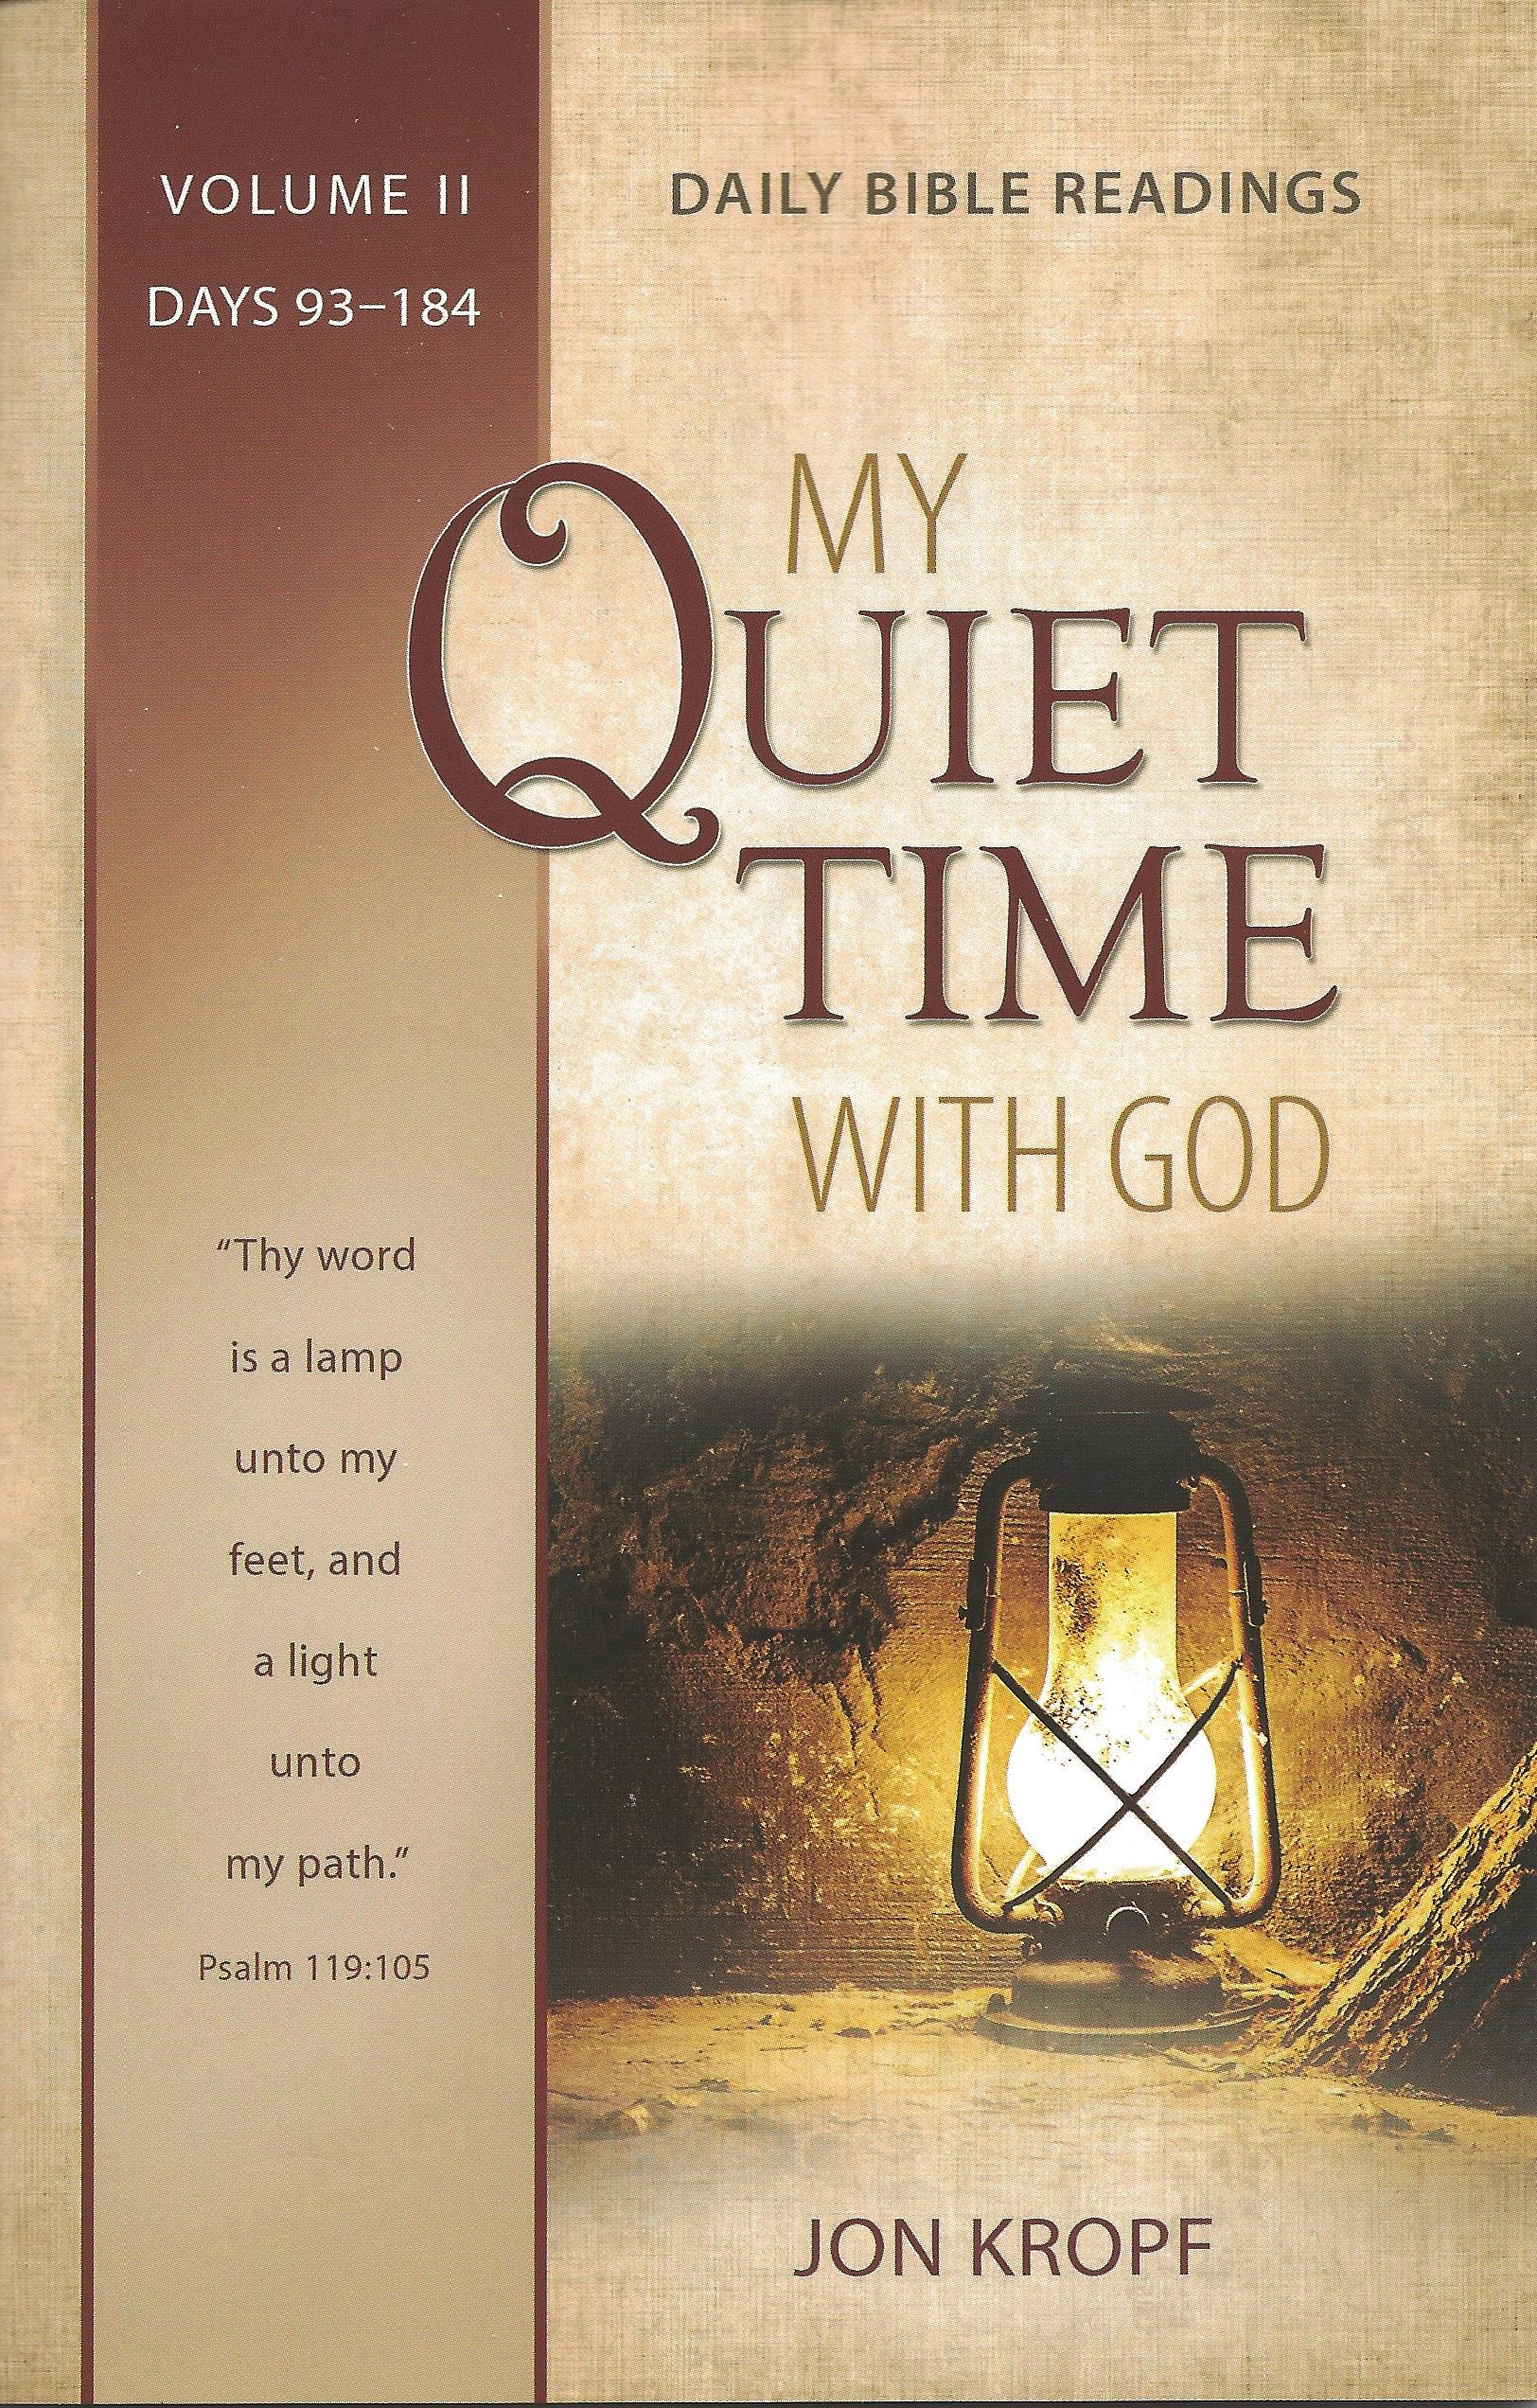 MY QUIET TIME WITH GOD VOL. II Jon Kropf